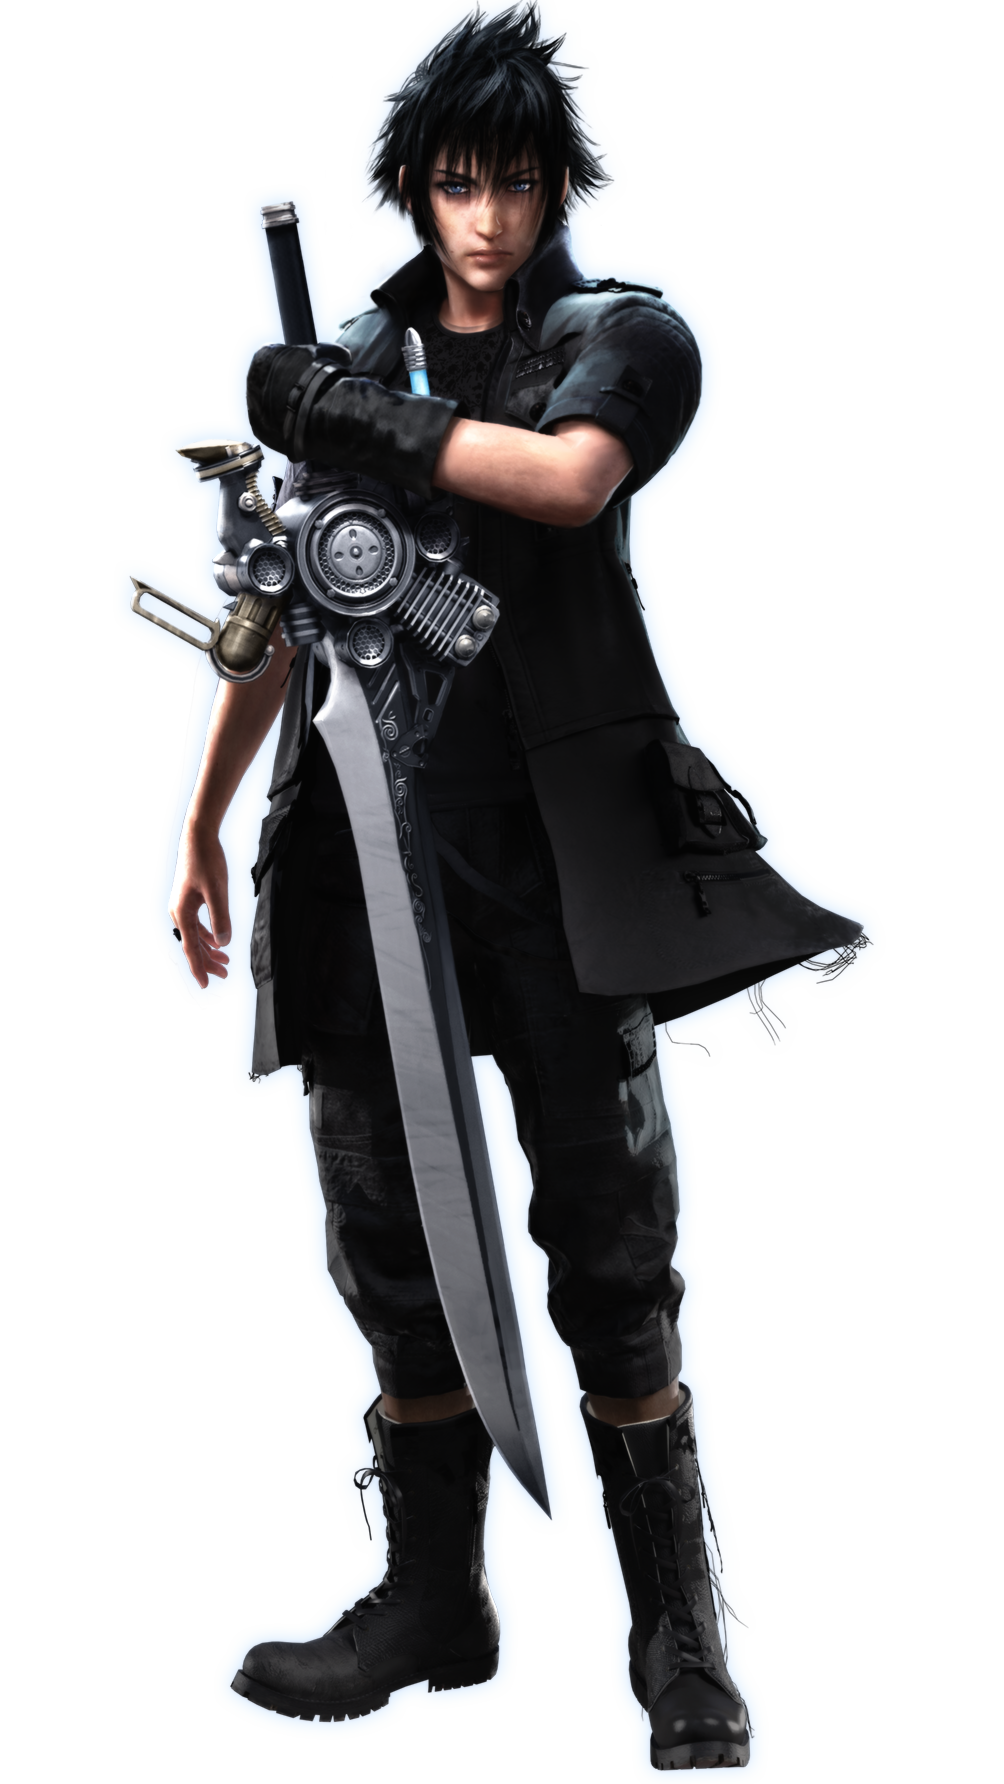 Character Design Final Fantasy Xv : Final fantasy xv noctis lucis caelum by ajckh on deviantart